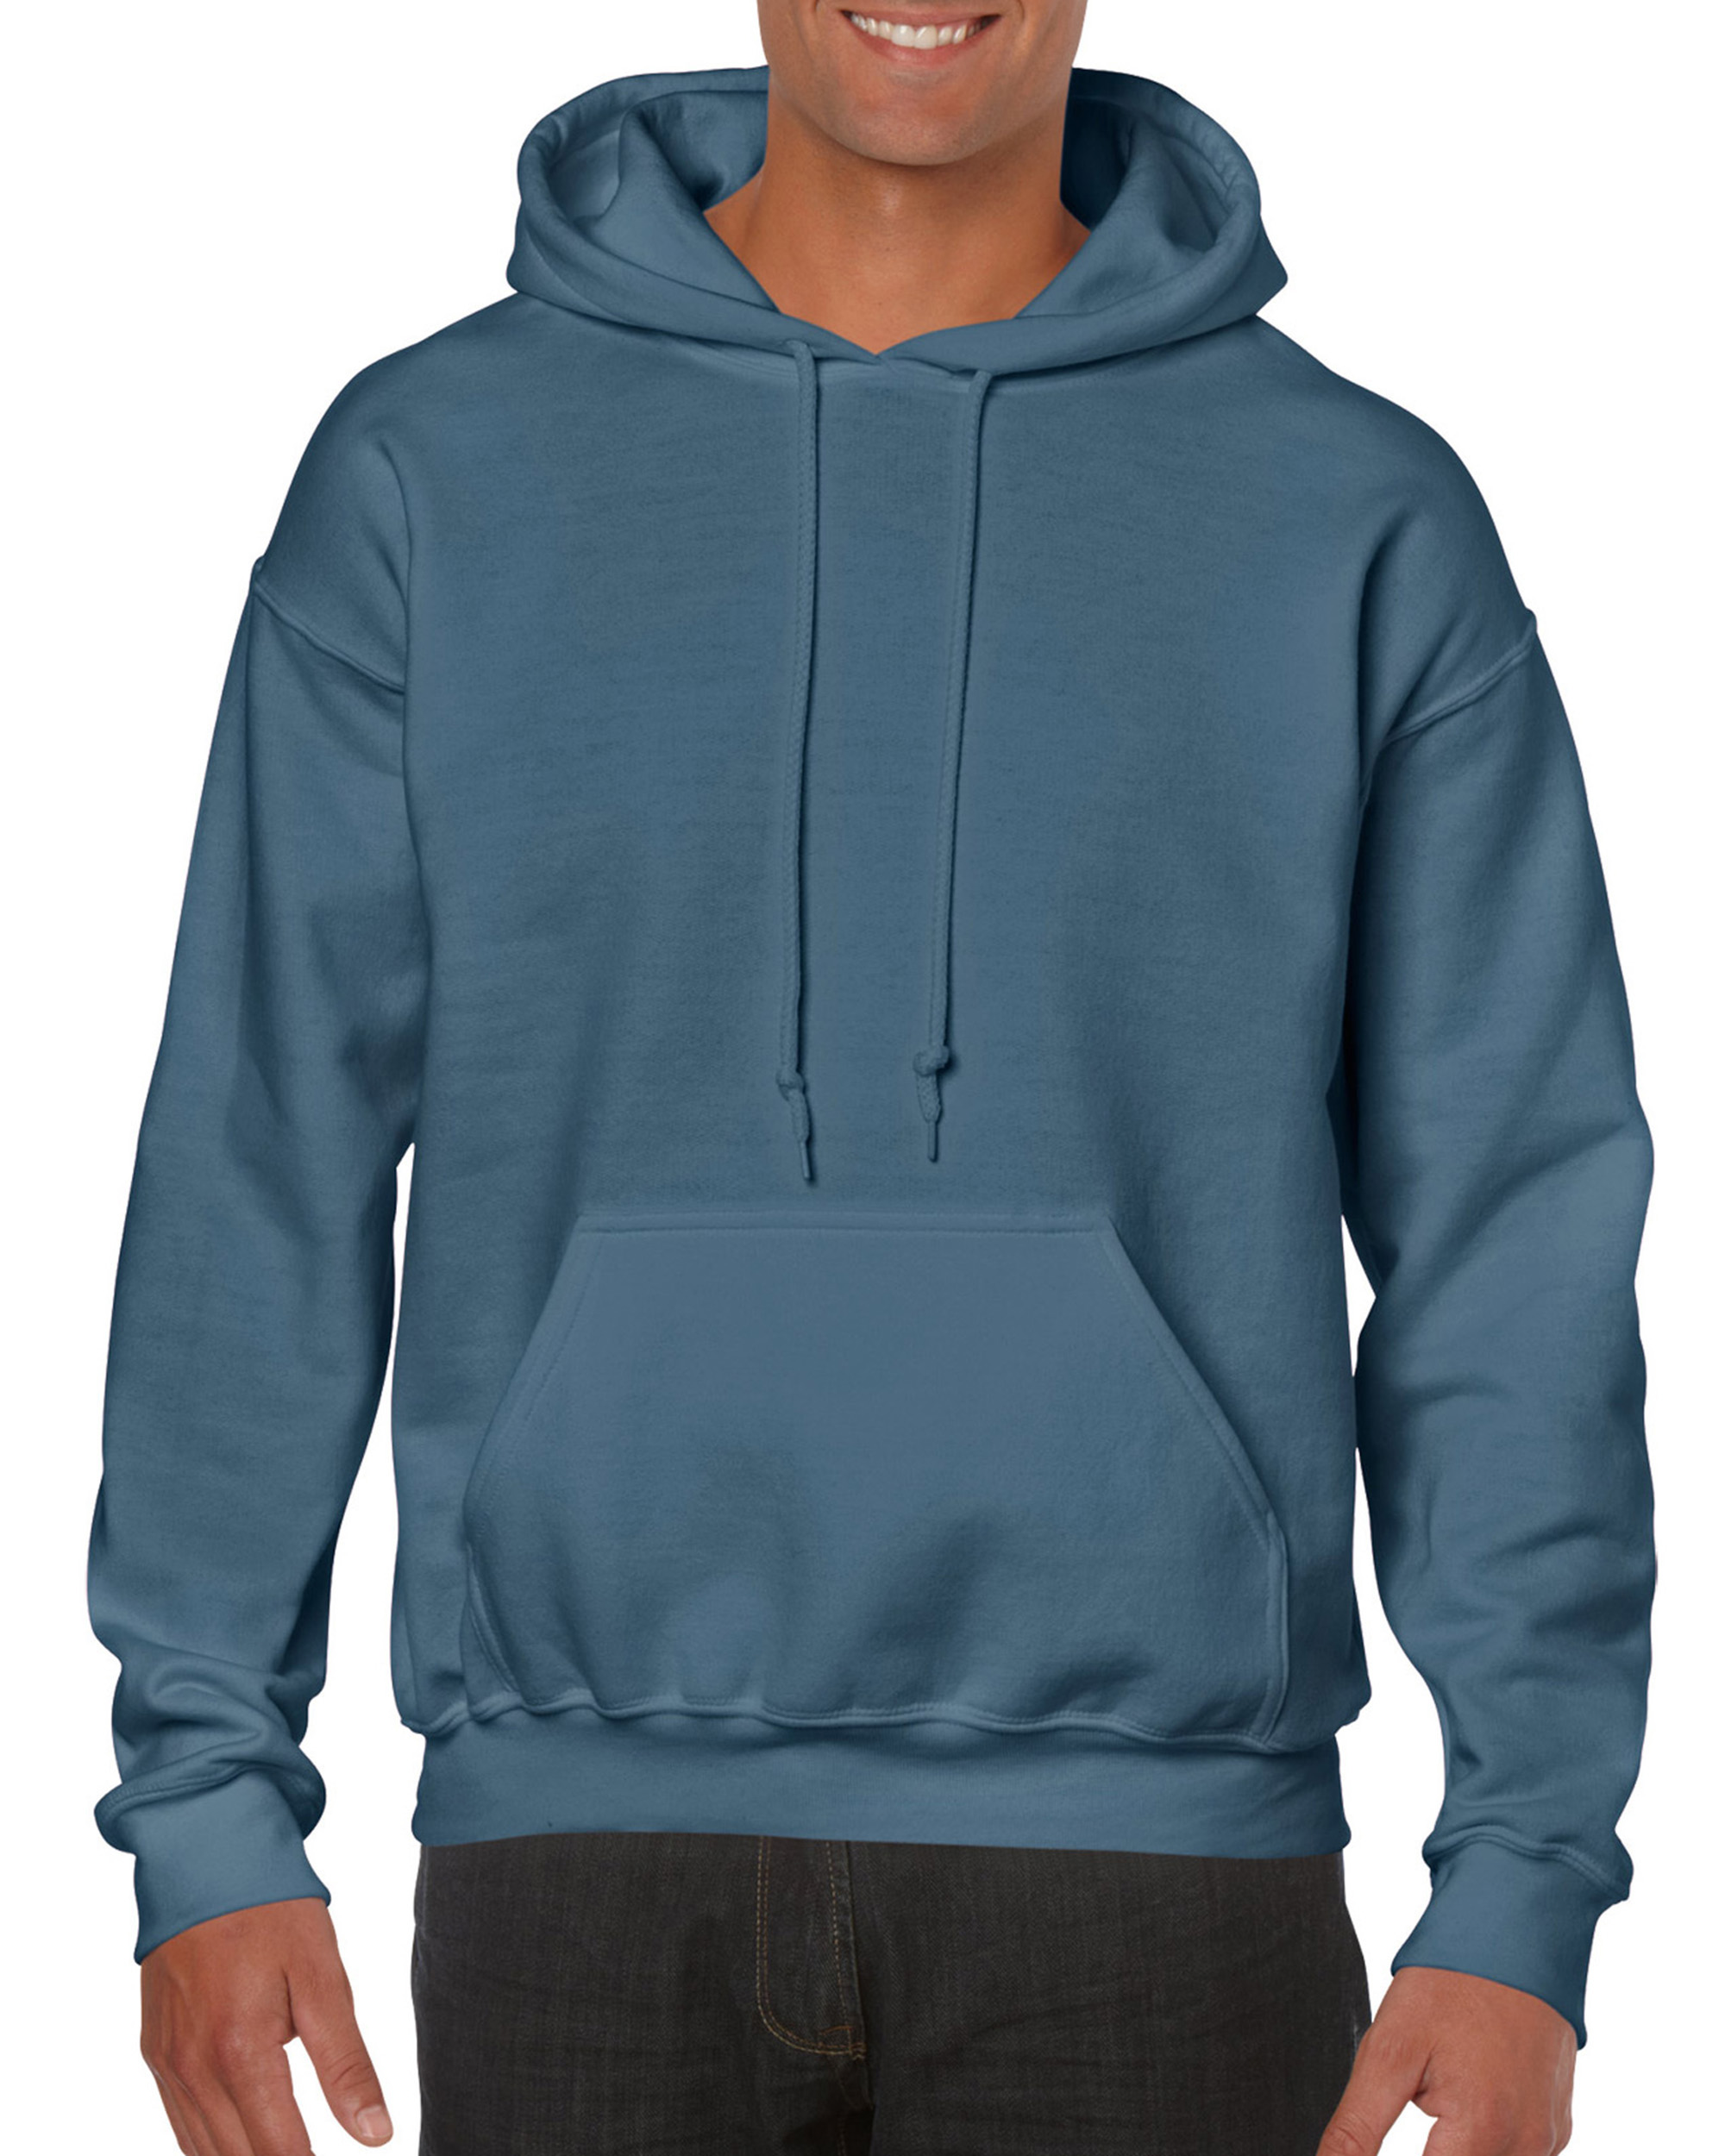 Gildan 18500 - Wholesale Hoodie Heavyweight Blend Hooded 8 oz